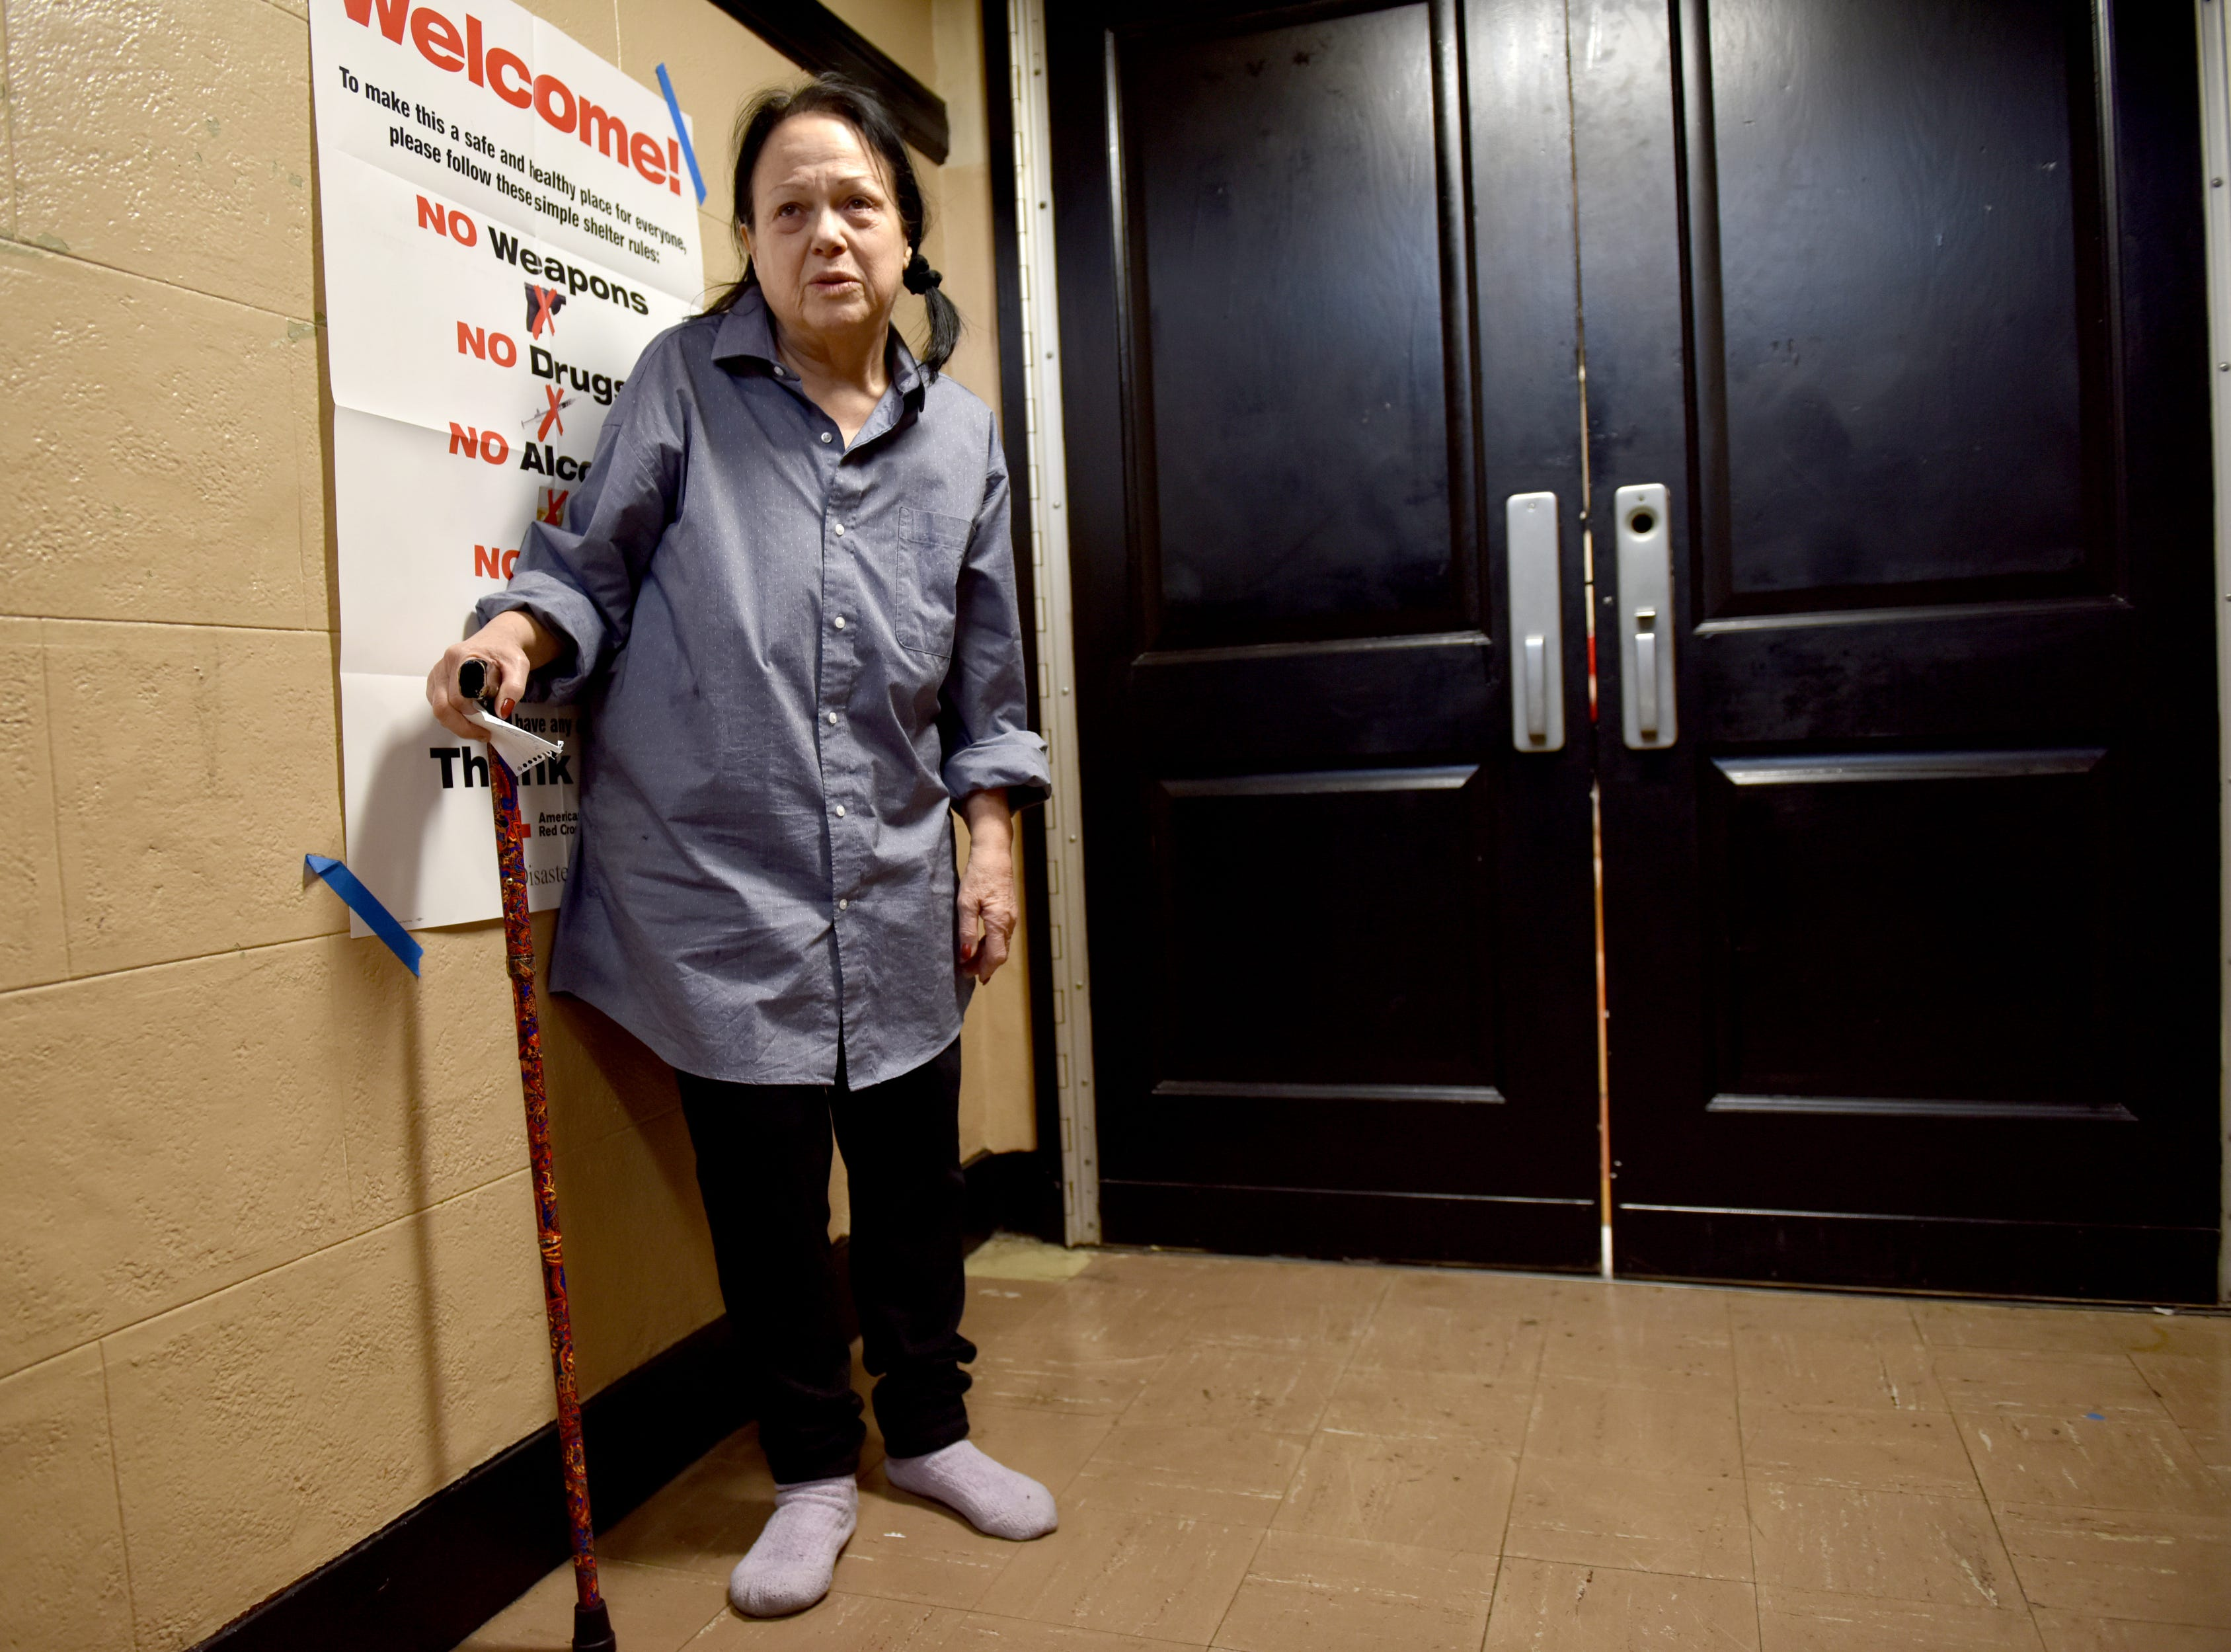 Cindy Zweibel is staying at a Red Cross shelter, which was set up at the Fort Lee High School gymnasium for residents that were displaced from the fire, which broke out at an apartment complex on Edwin Ave in Fort Lee. Zweibel is wearing donated clothes that were provided to the residents.